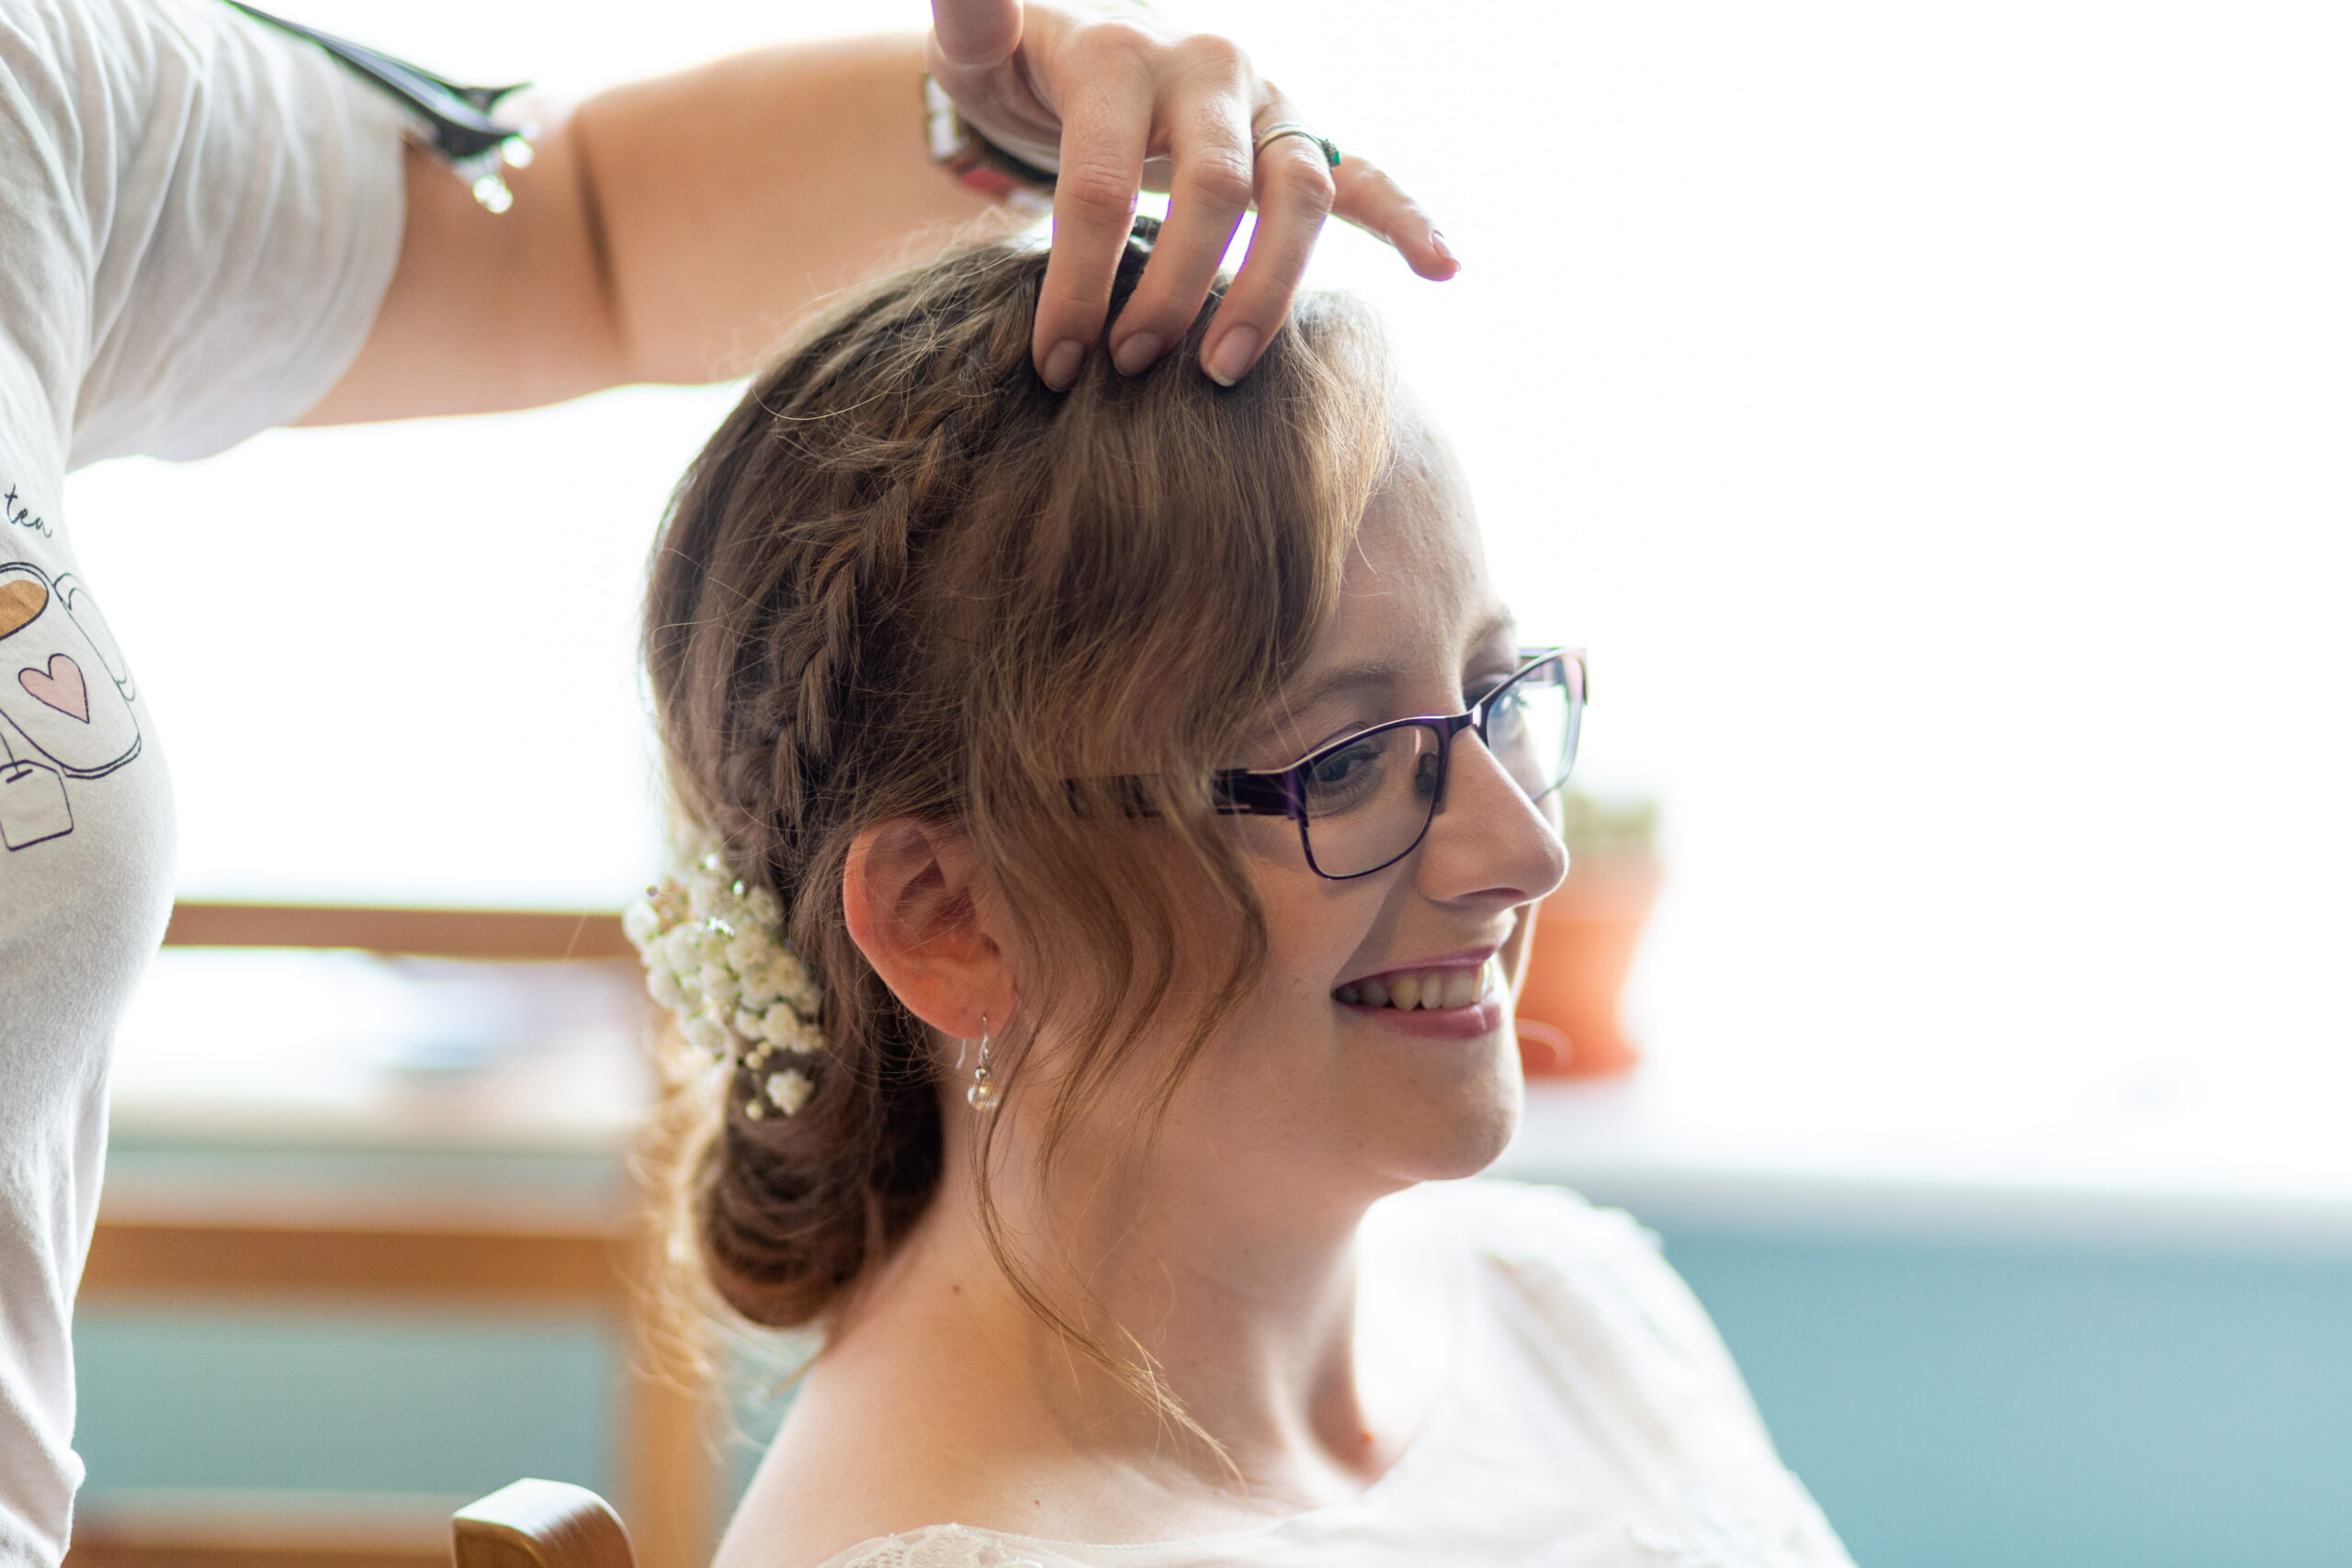 A hand going through the fringe section of a beautiful bridal hair up separating to create texture. A hairstylist doing the finishing touches to a smiling bride wearing glasses. Happy times.